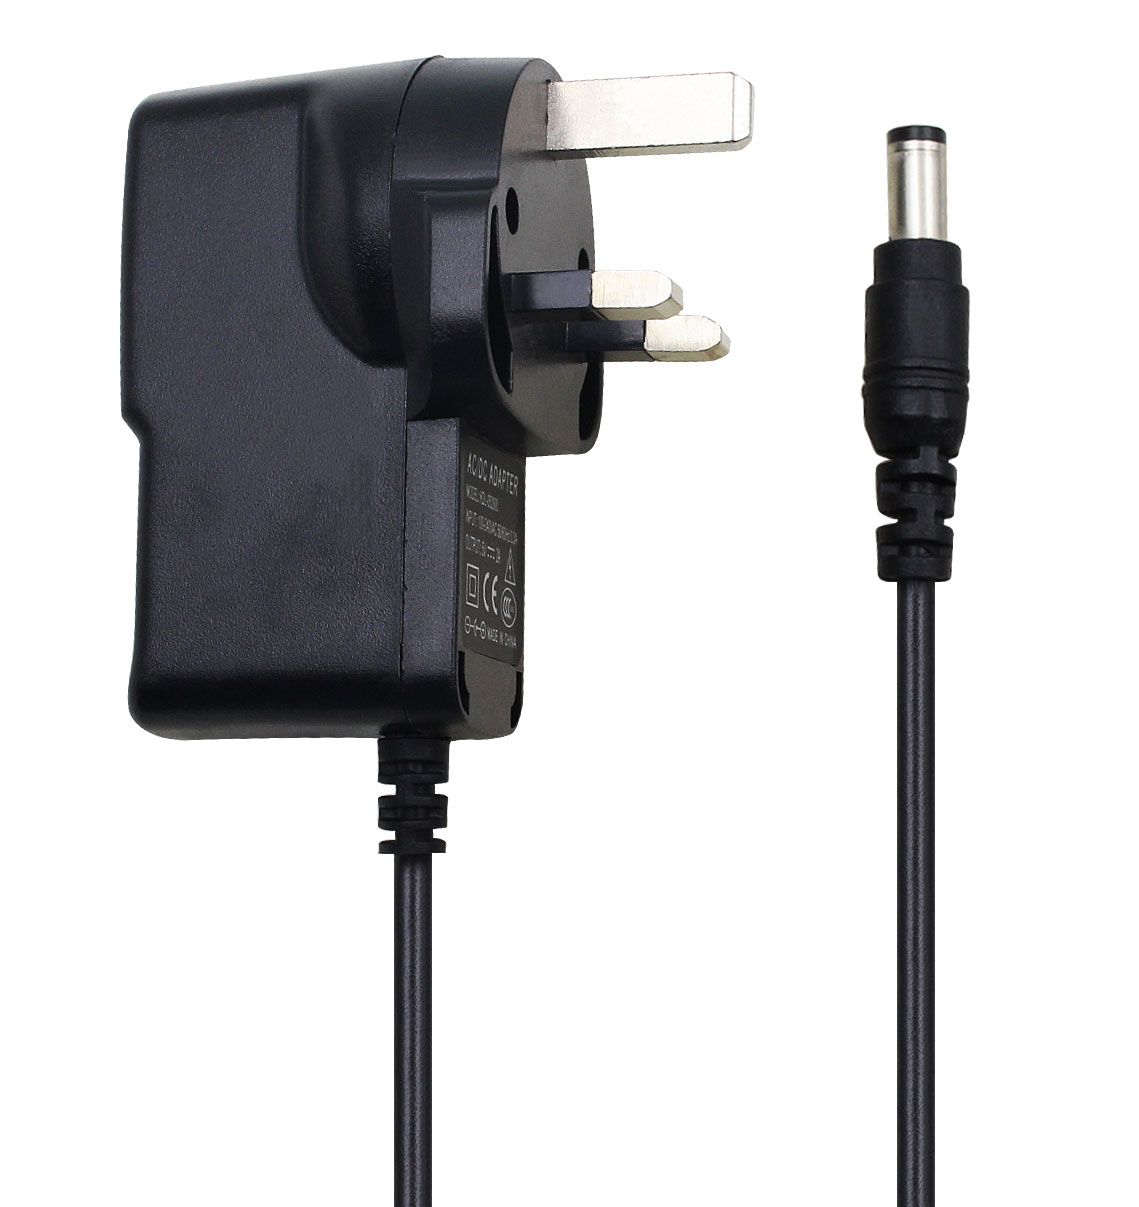 USB DC Adapter Power Supply Cable For EM95X Android 6.0 S905x Core 4K TV Box